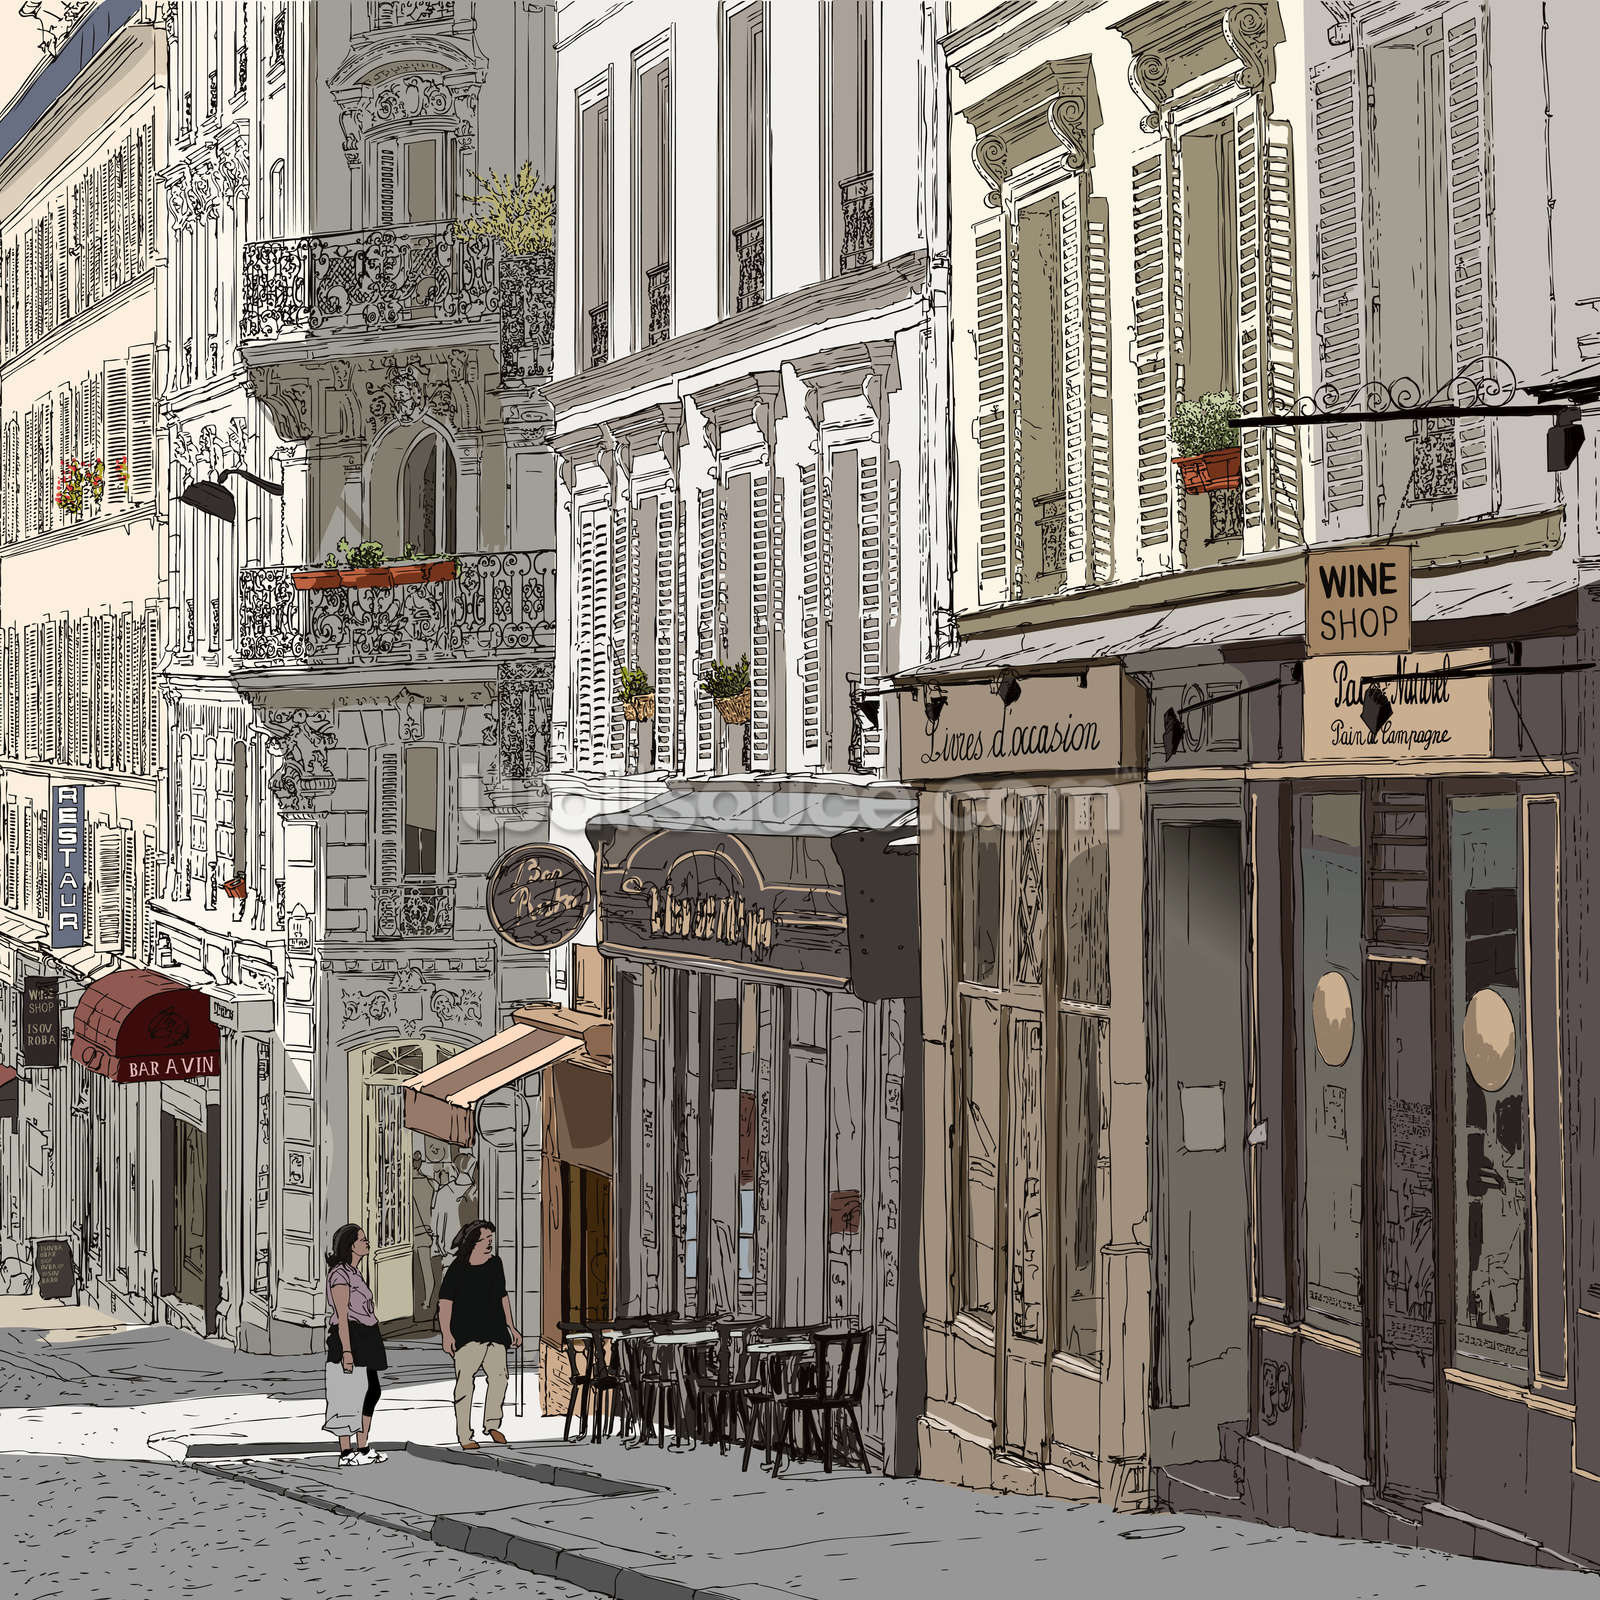 Montmartre paris wallpaper wall mural wallsauce usa montmartre paris wall mural photo wallpaper amipublicfo Image collections